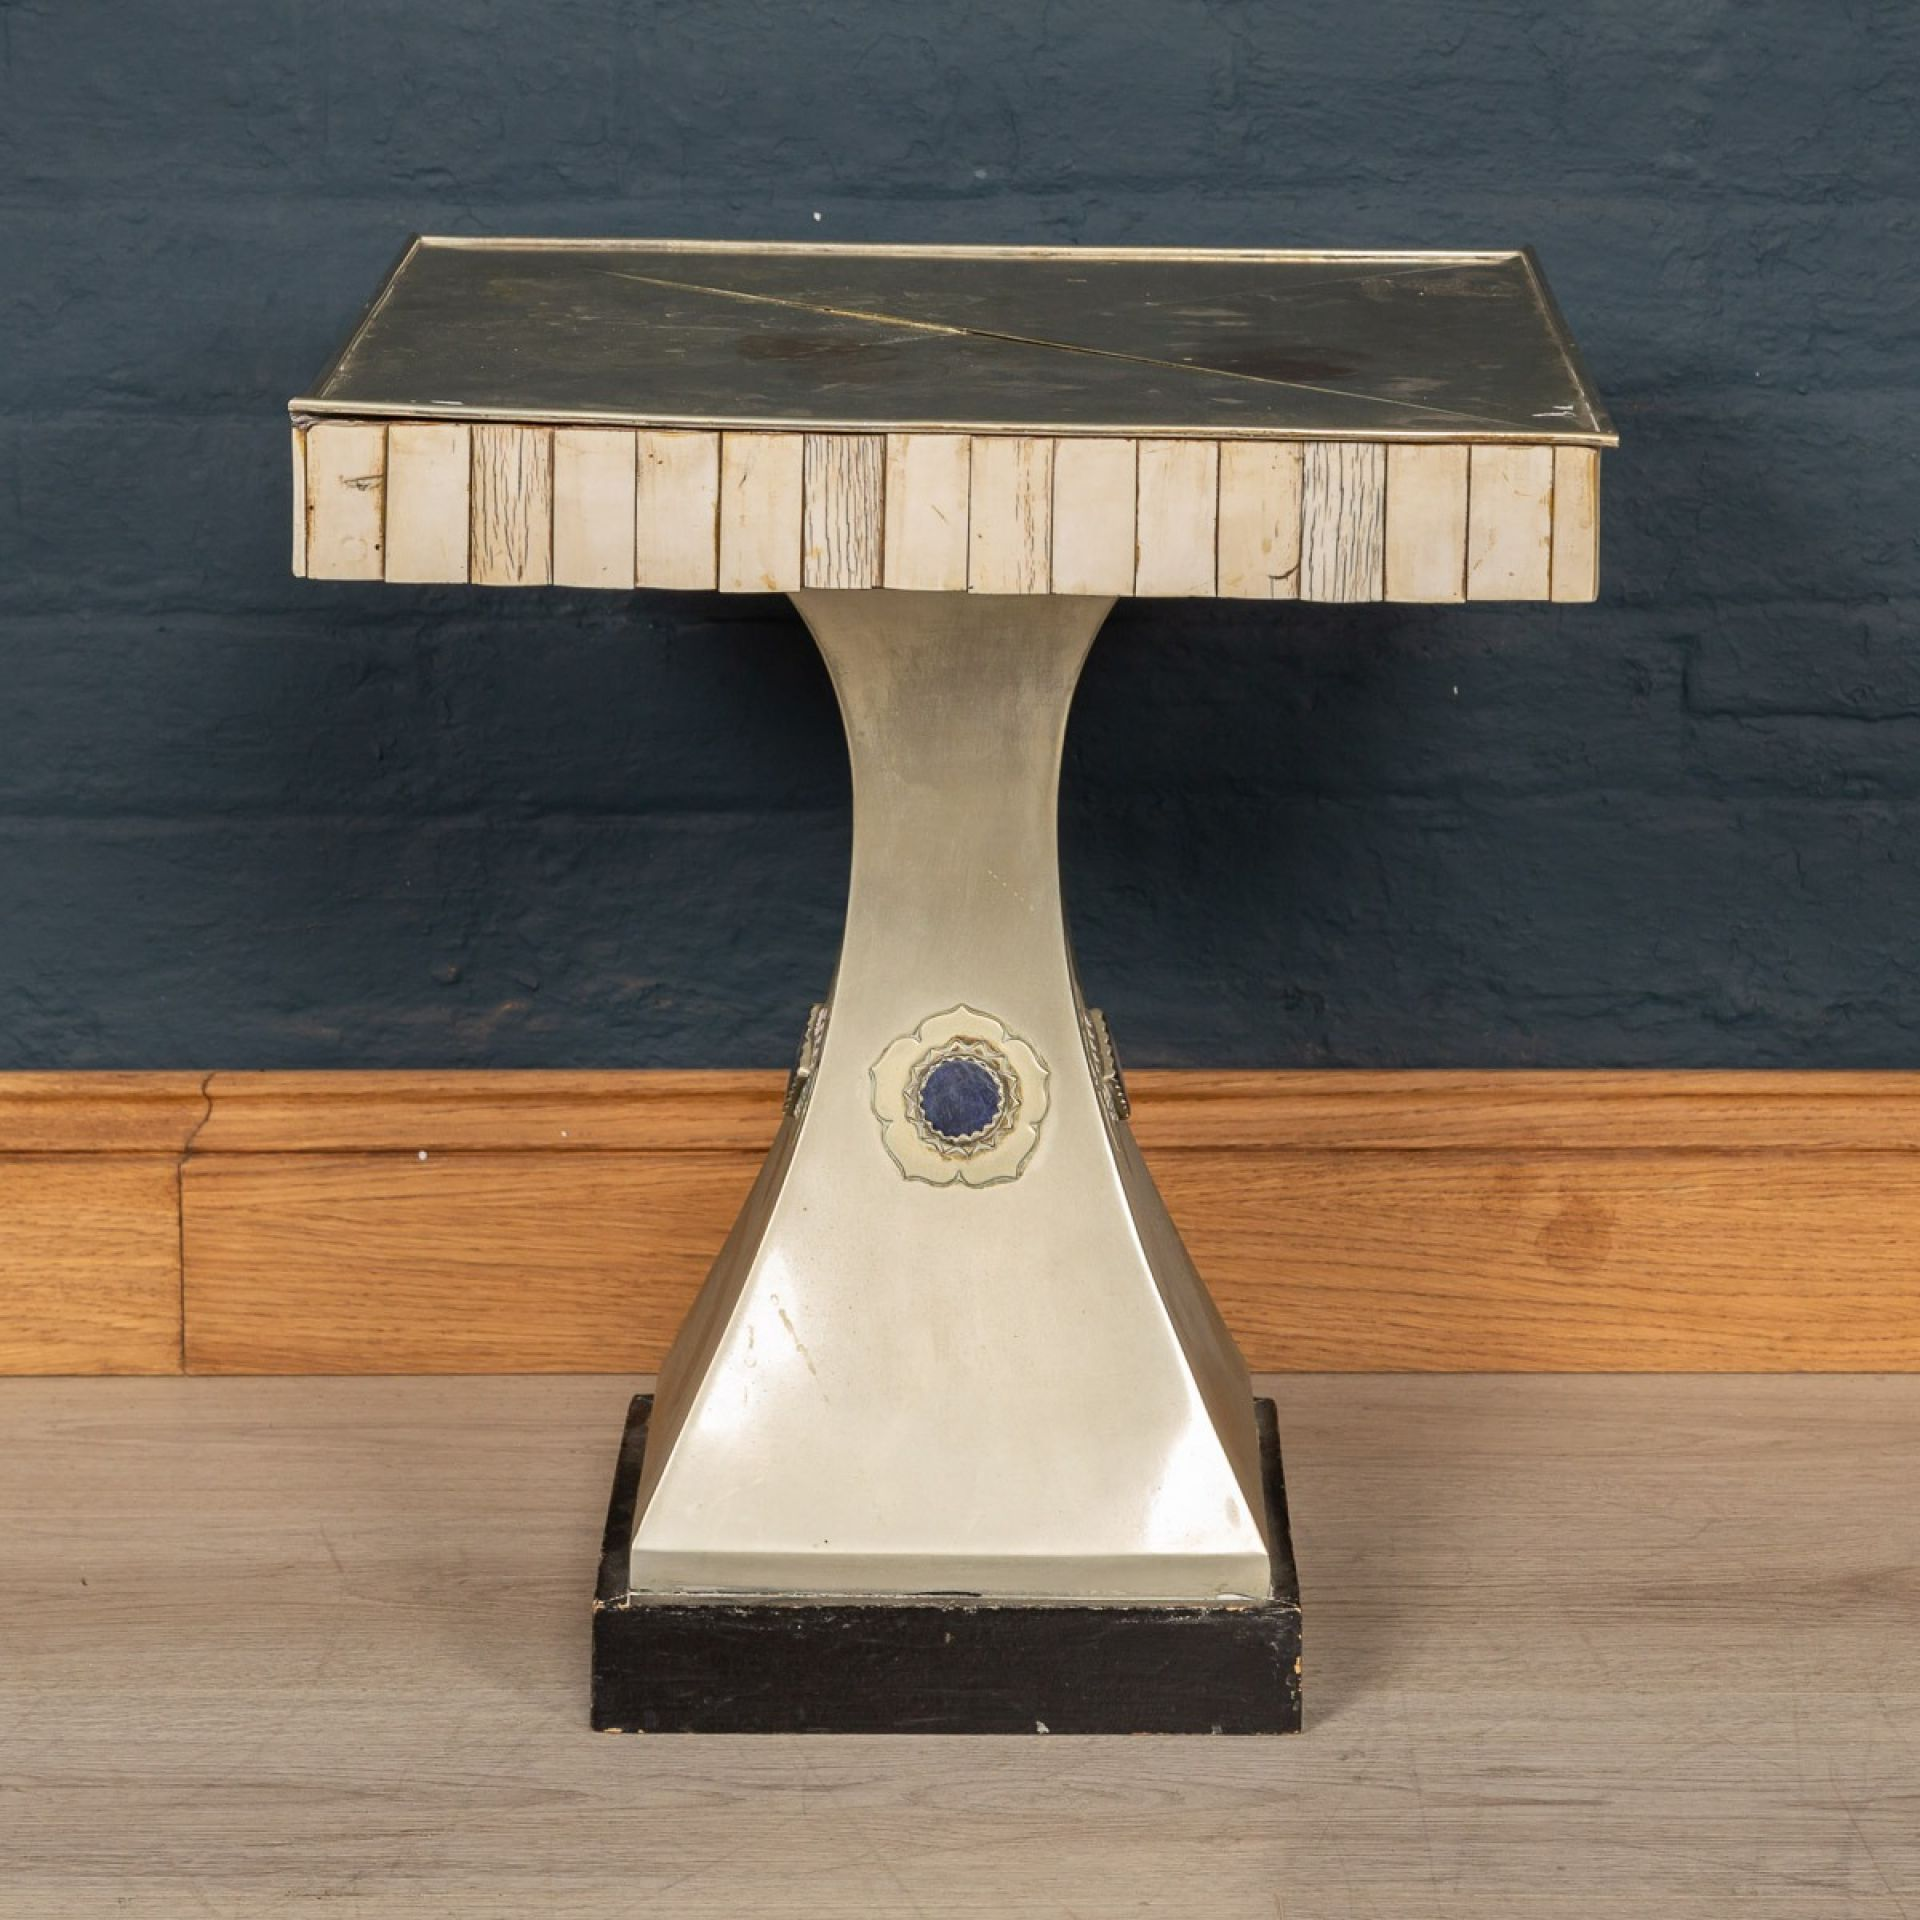 UNUSUAL SIDE TABLE BY ANTHONY REDMILE, LONDON c.1970